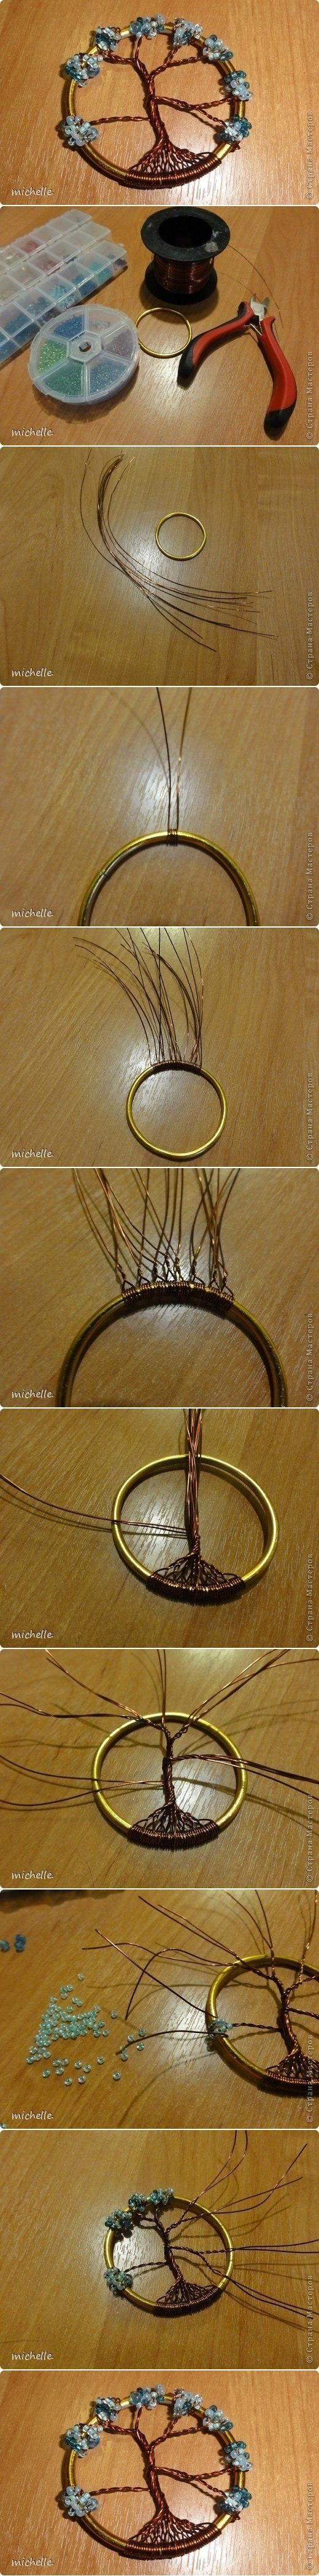 2869 Best Jewelry Junction Images On Pinterest Wire Wrap Wiring Diagram Motor Karisma Make A Big Scale Be Creative With Your Leaves Think Other Types Of